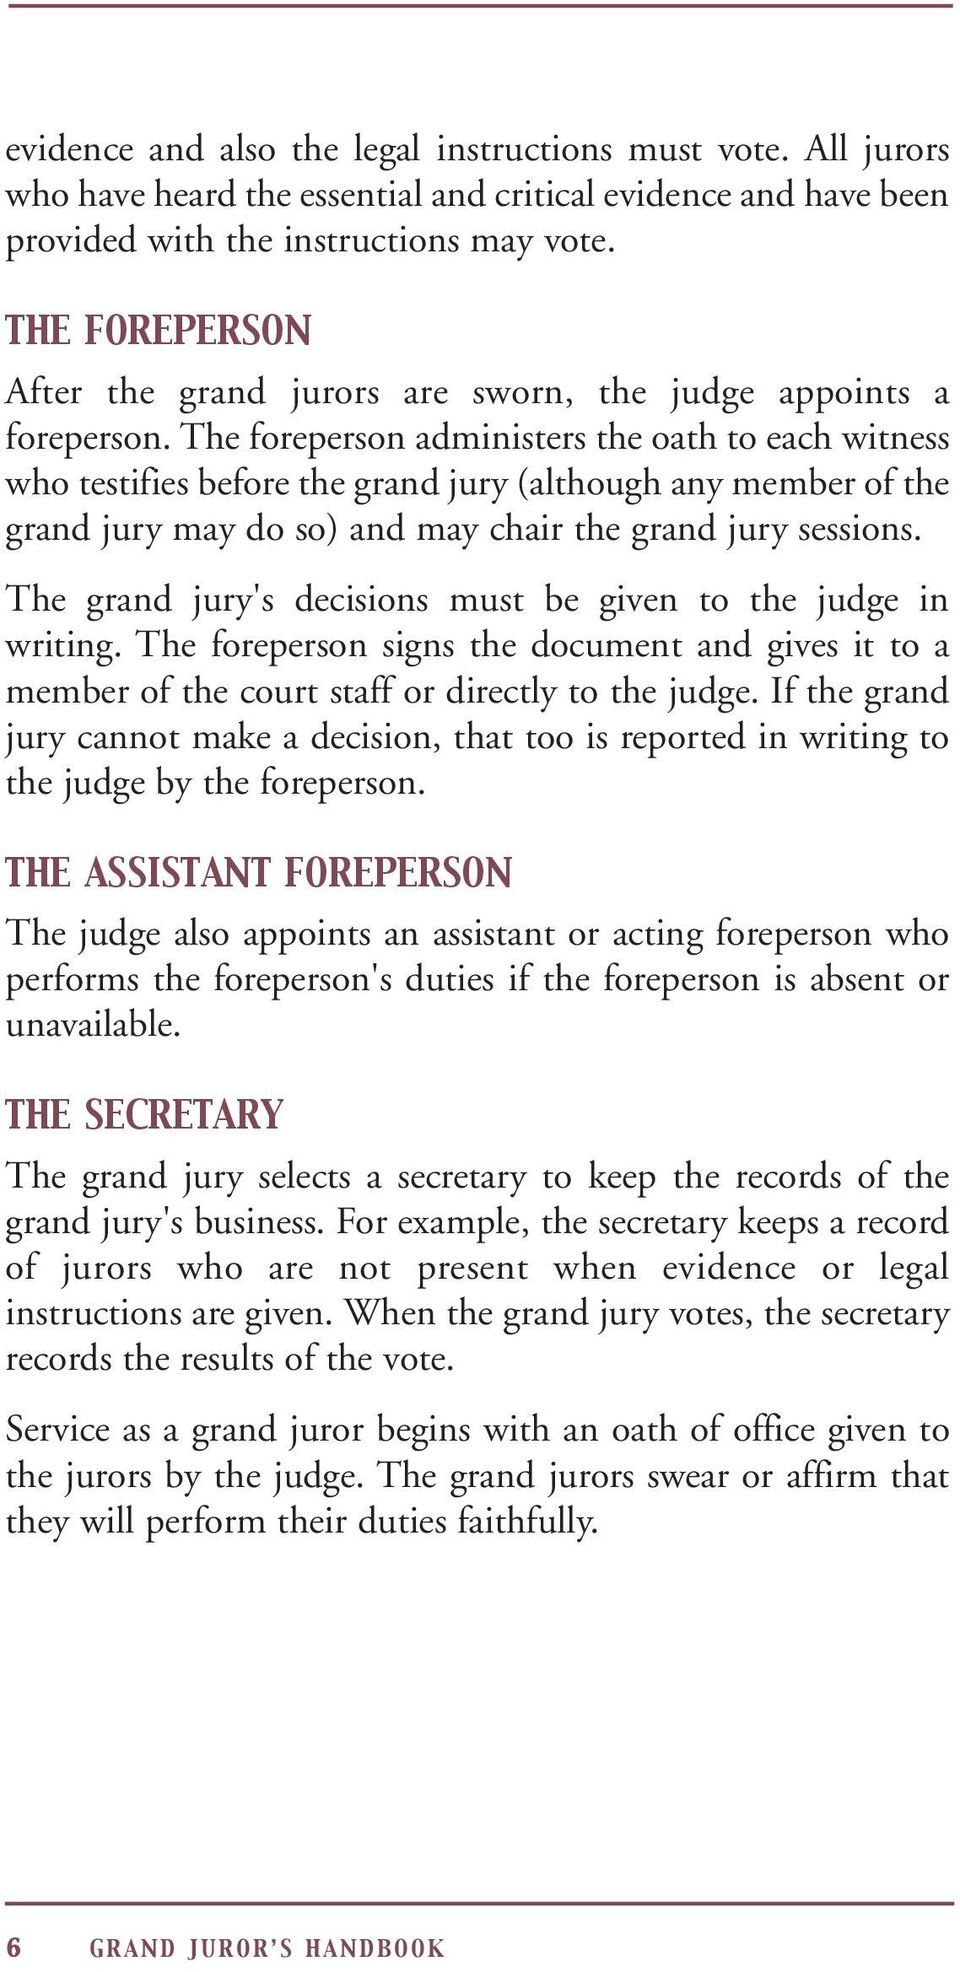 The foreperson administers the oath to each witness who testifies before the grand jury (although any member of the grand jury may do so) and may chair the grand jury sessions.